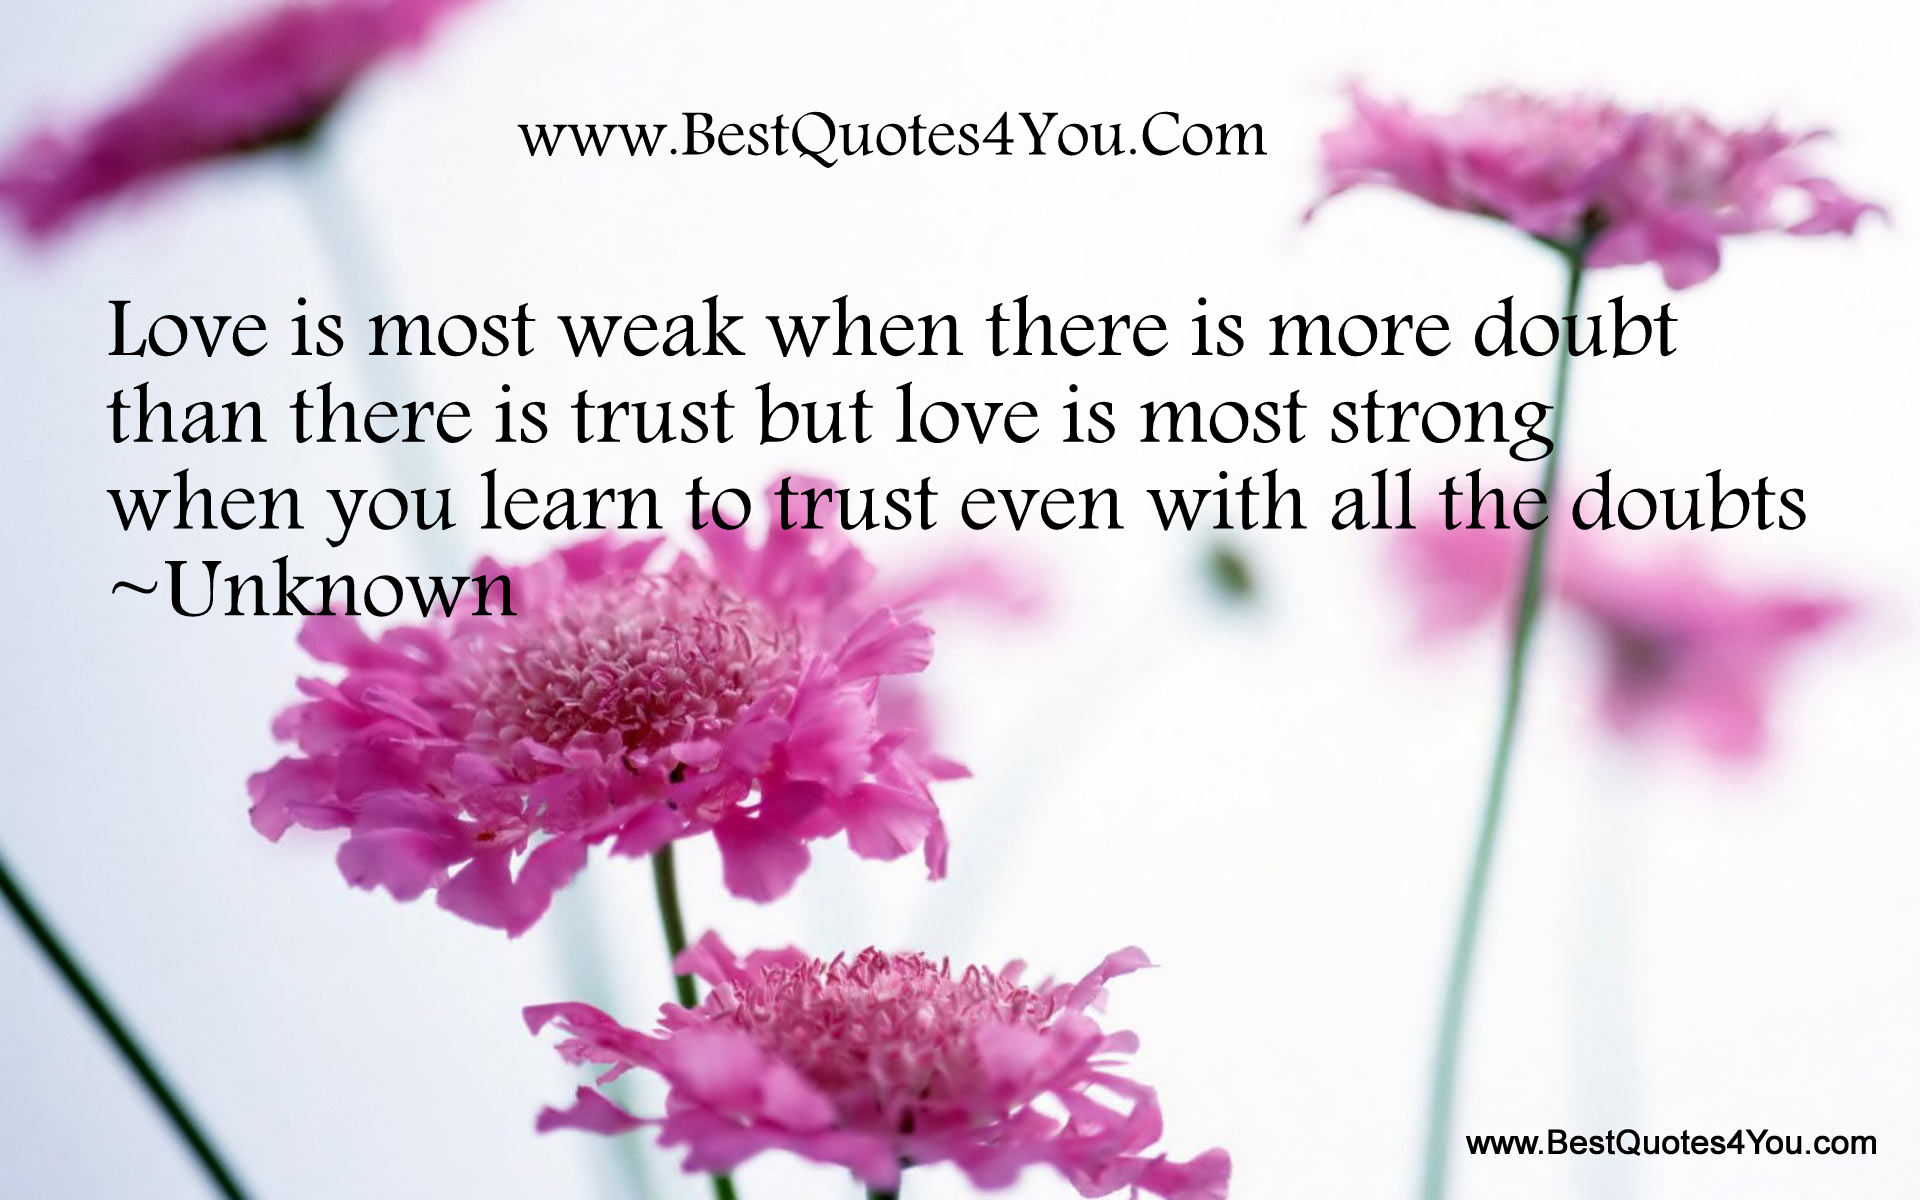 Love Is Most Weak When There Is More Doubt Than There Is Trust But Love Is Most Strong Which You Learn To Trust Even With All The Doubts